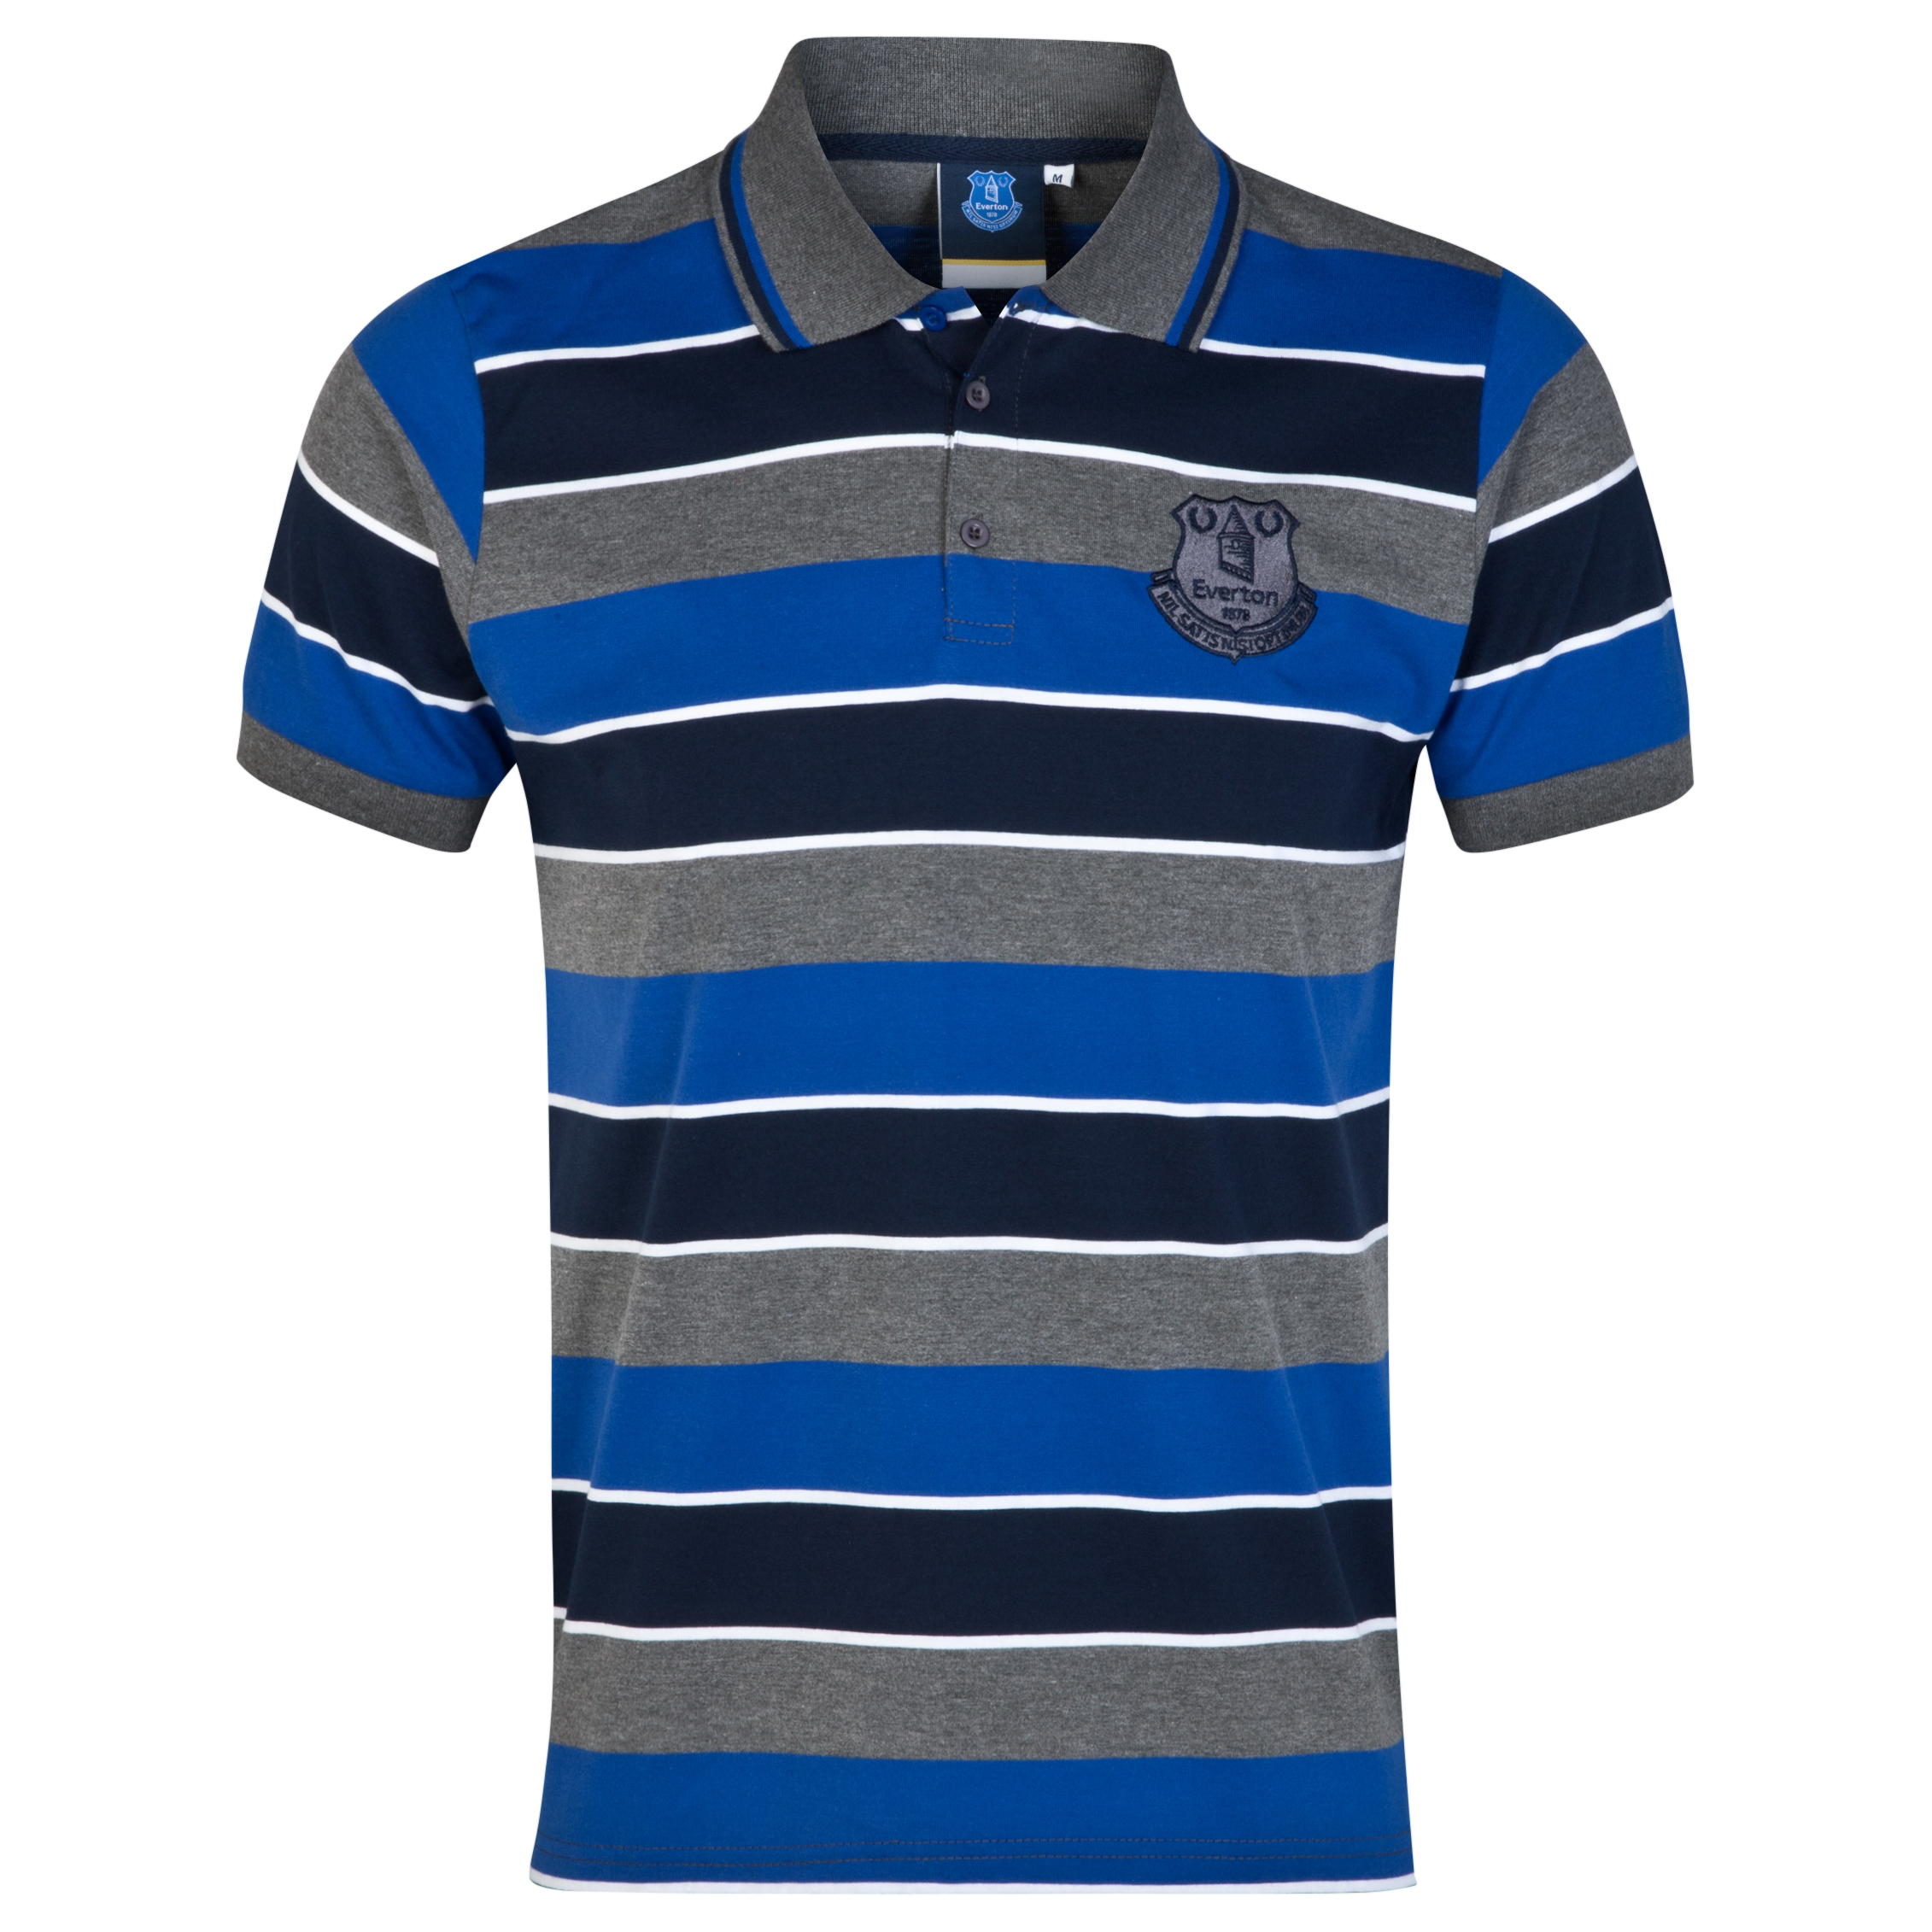 Everton Essential Stripe Polo Shirt - Vintage Marl/Navy/Everton Blue - Mens